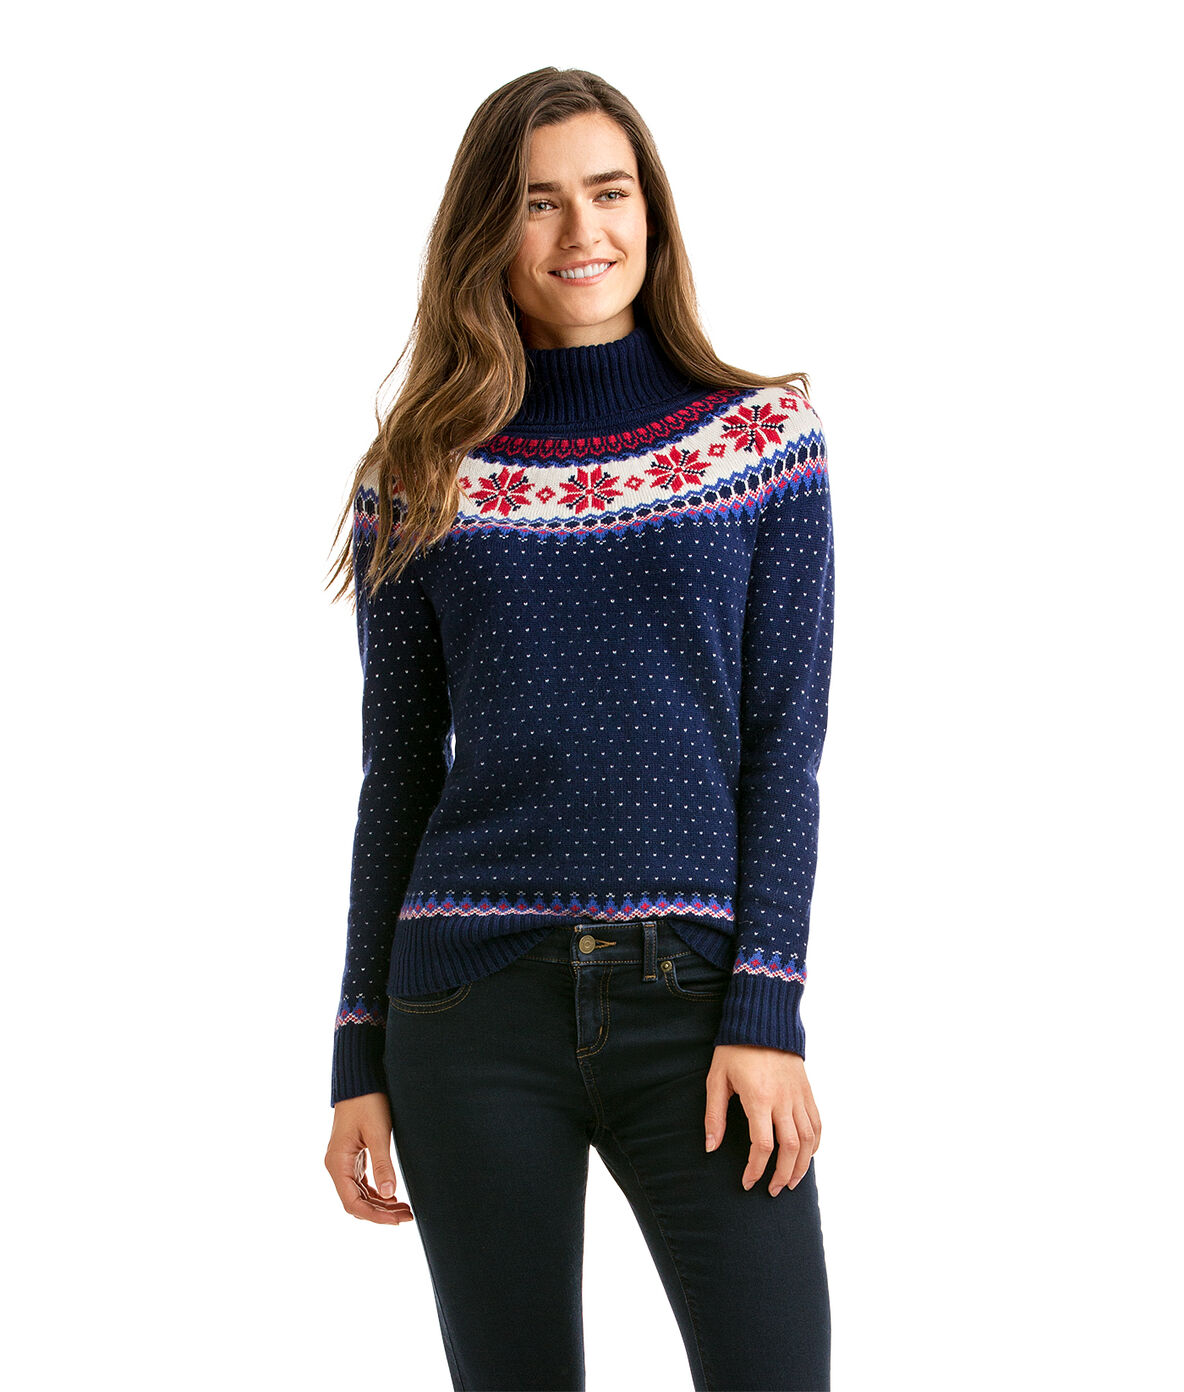 Shop Snowflake Fair Isle Turtleneck at vineyard vines